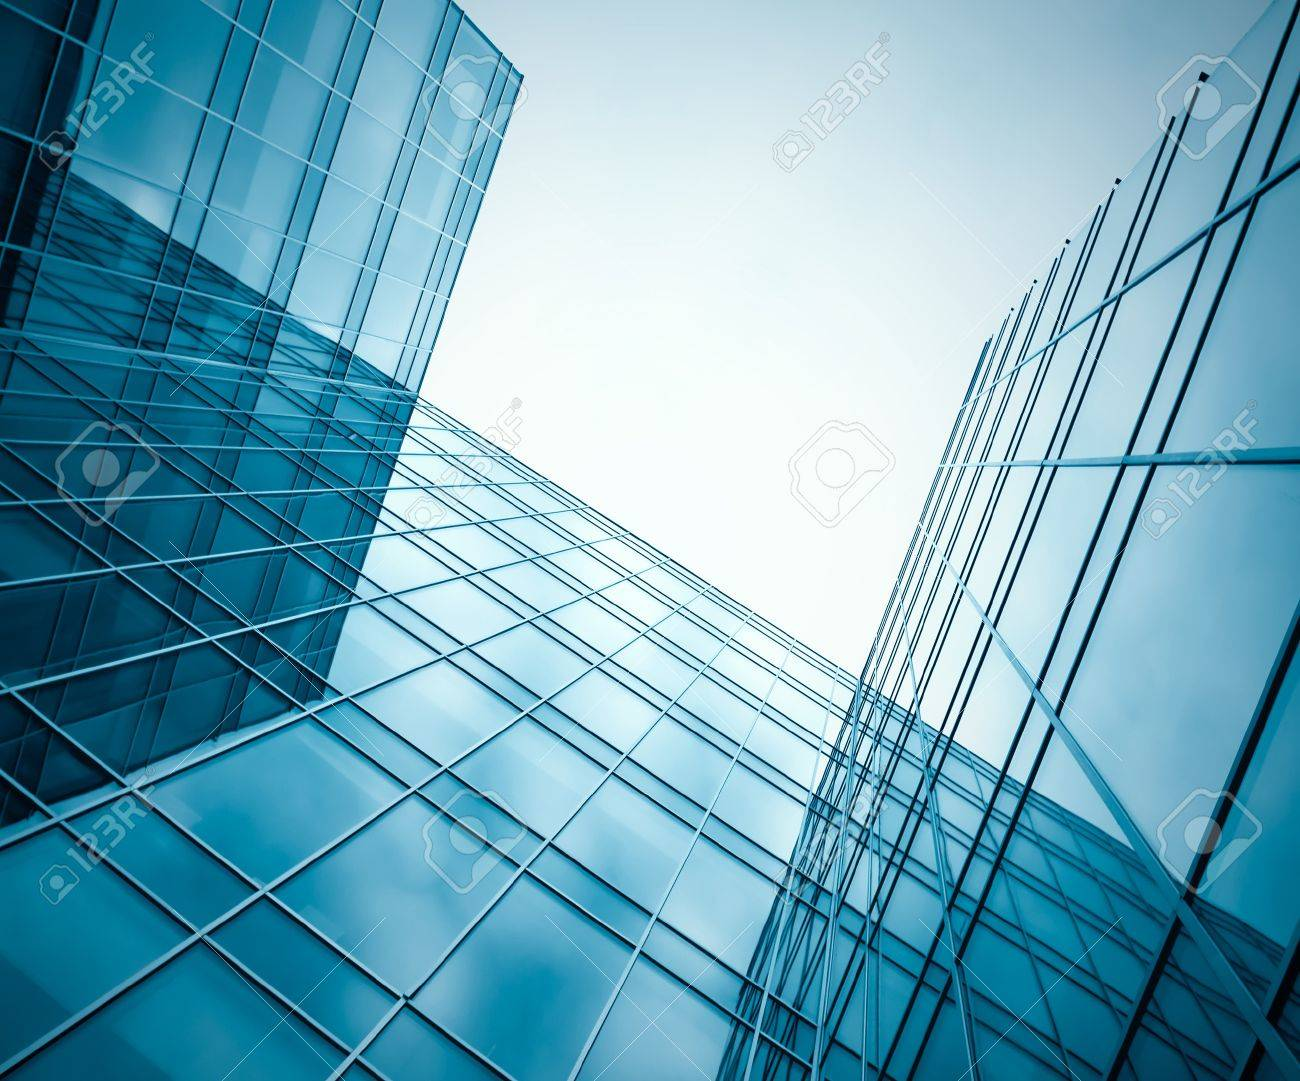 modern glass silhouettes of skyscrapers at night Stock Photo - 8826894